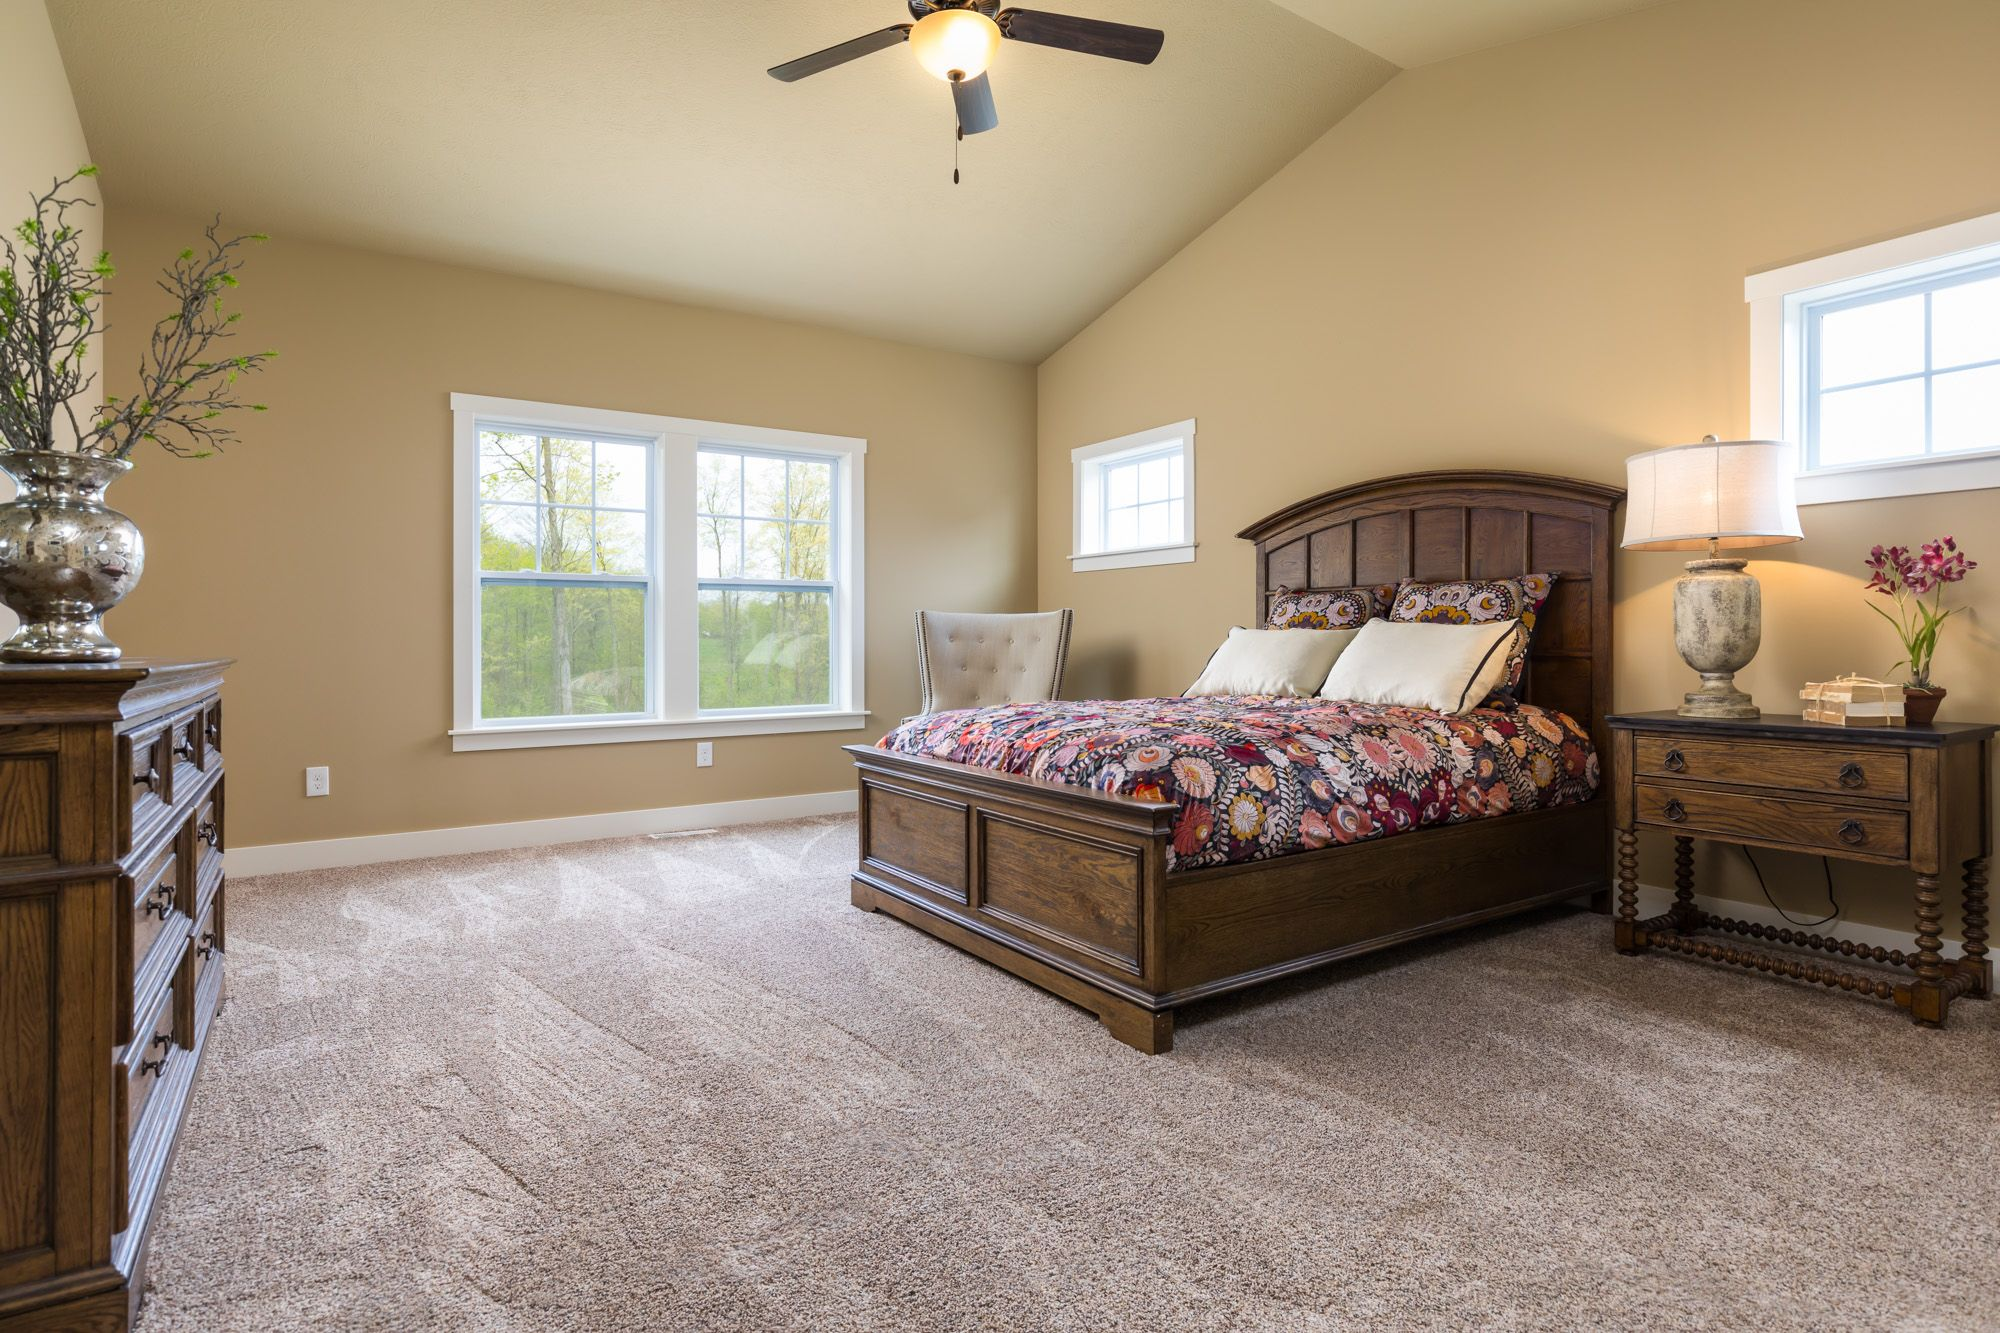 Bedroom featured in the Traditions 2900 V8.2b By Allen Edwin Homes in Flint, MI